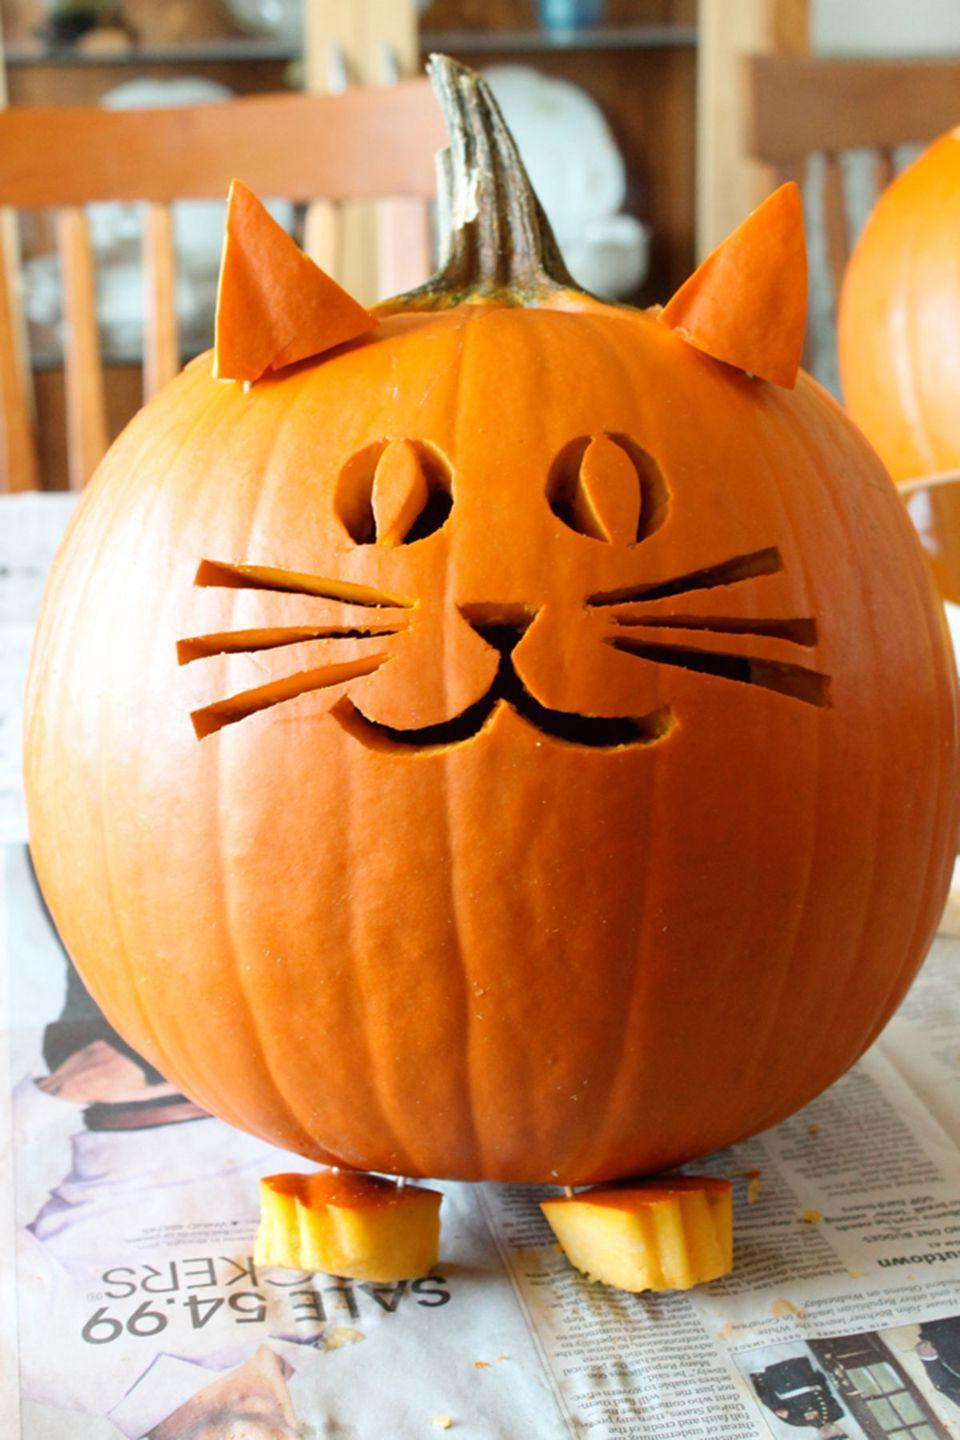 "<p>There's nothin' scary about this adorable little pumpkin!</p><p><strong>Get the tutorial at <a href=""http://ladyfaceblog.blogspot.com/2013/10/pumpkin-carving.html"" rel=""nofollow noopener"" target=""_blank"" data-ylk=""slk:Ladyface Blog"" class=""link rapid-noclick-resp"">Ladyface Blog</a>. </strong></p>"